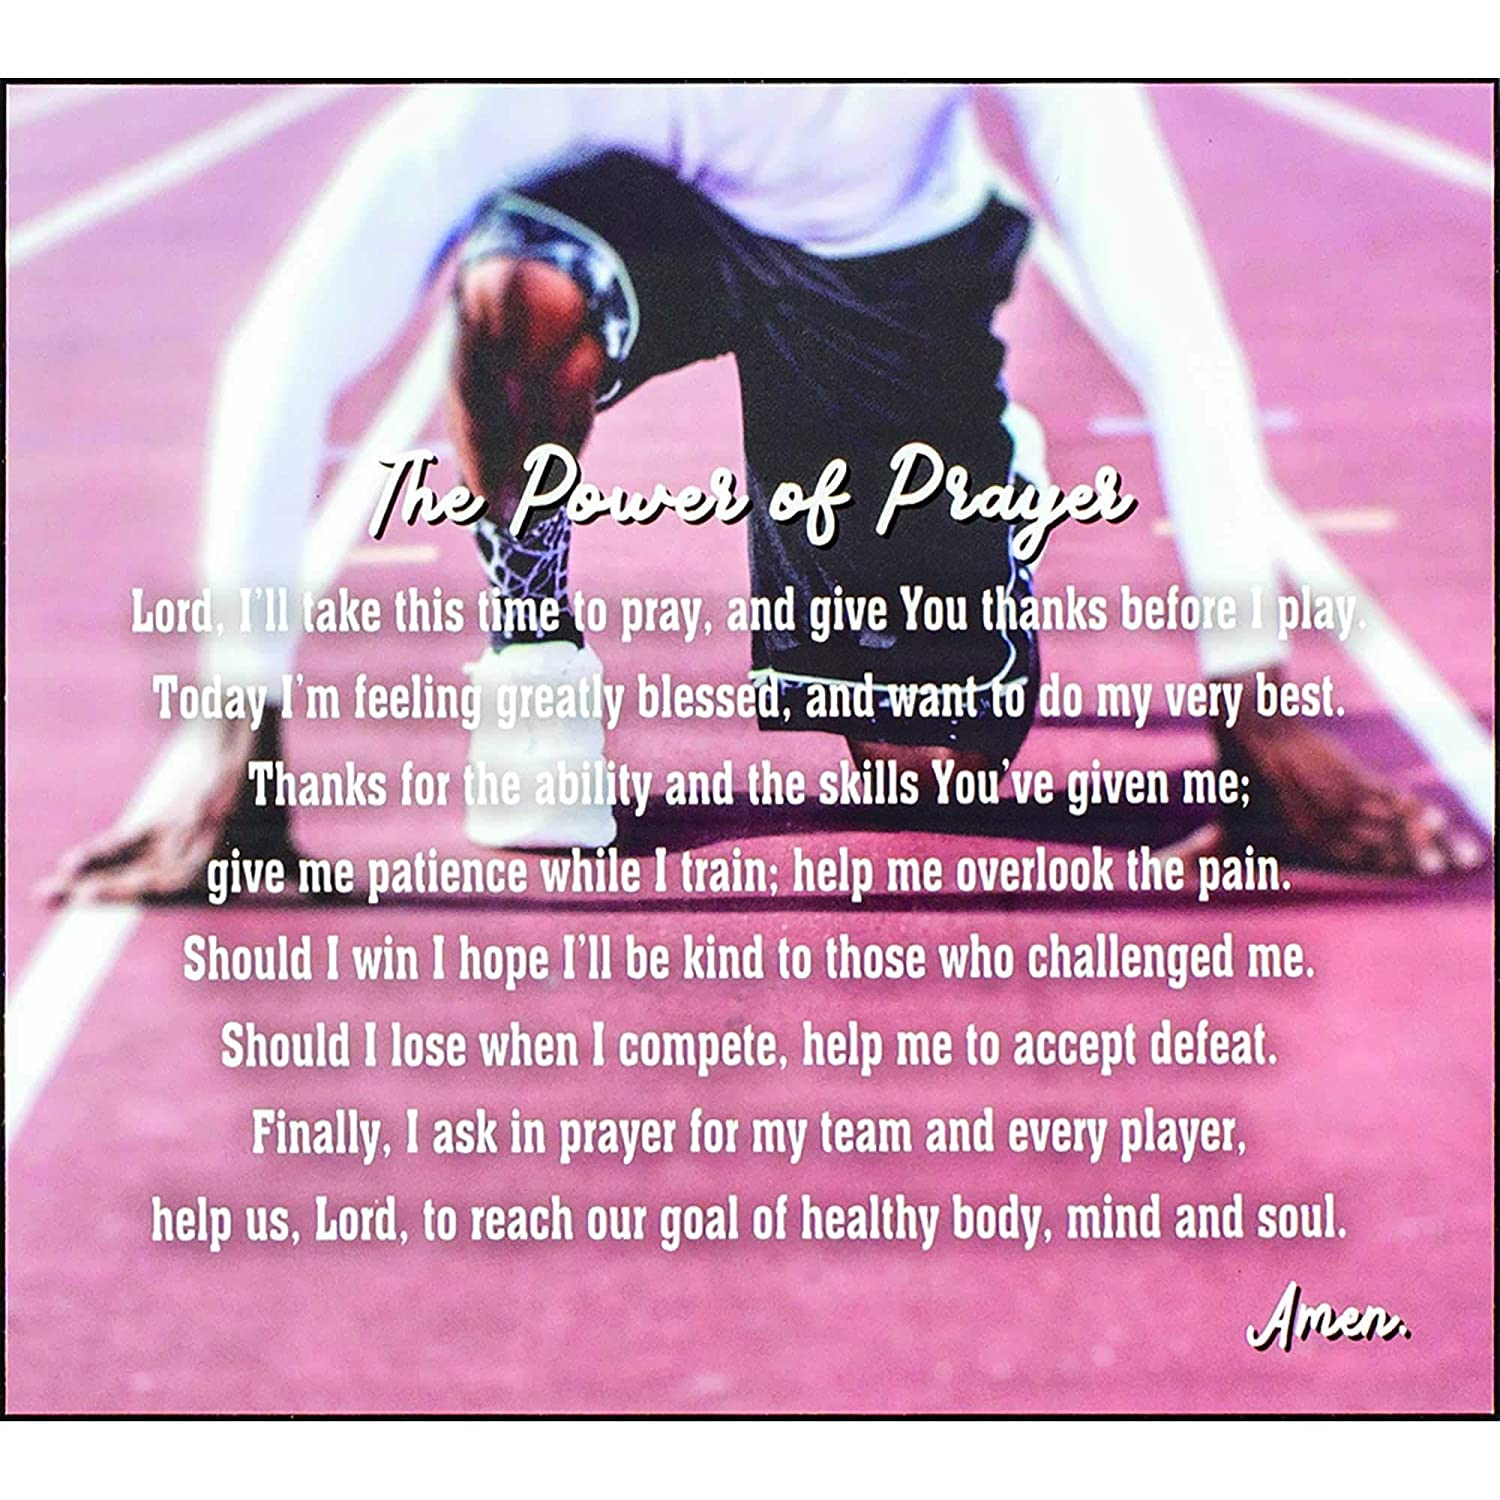 Dicksons The Power of Prayer Amen Track Star Blurred Lanes Wood Wall Sign Plaque